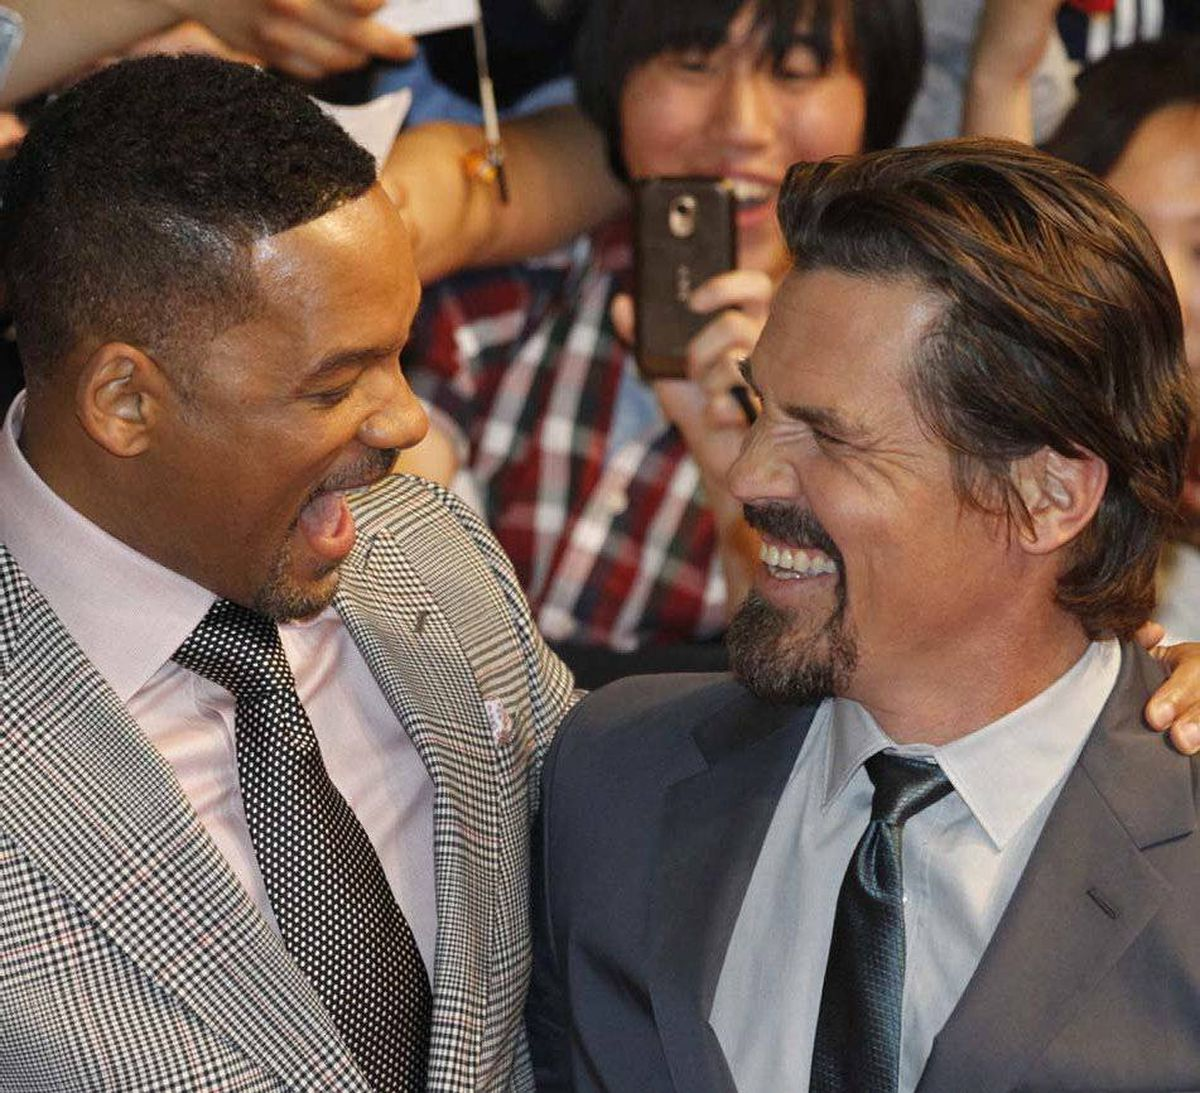 Then Will Smith does that thing with his mouth right in Josh Brolin's face.